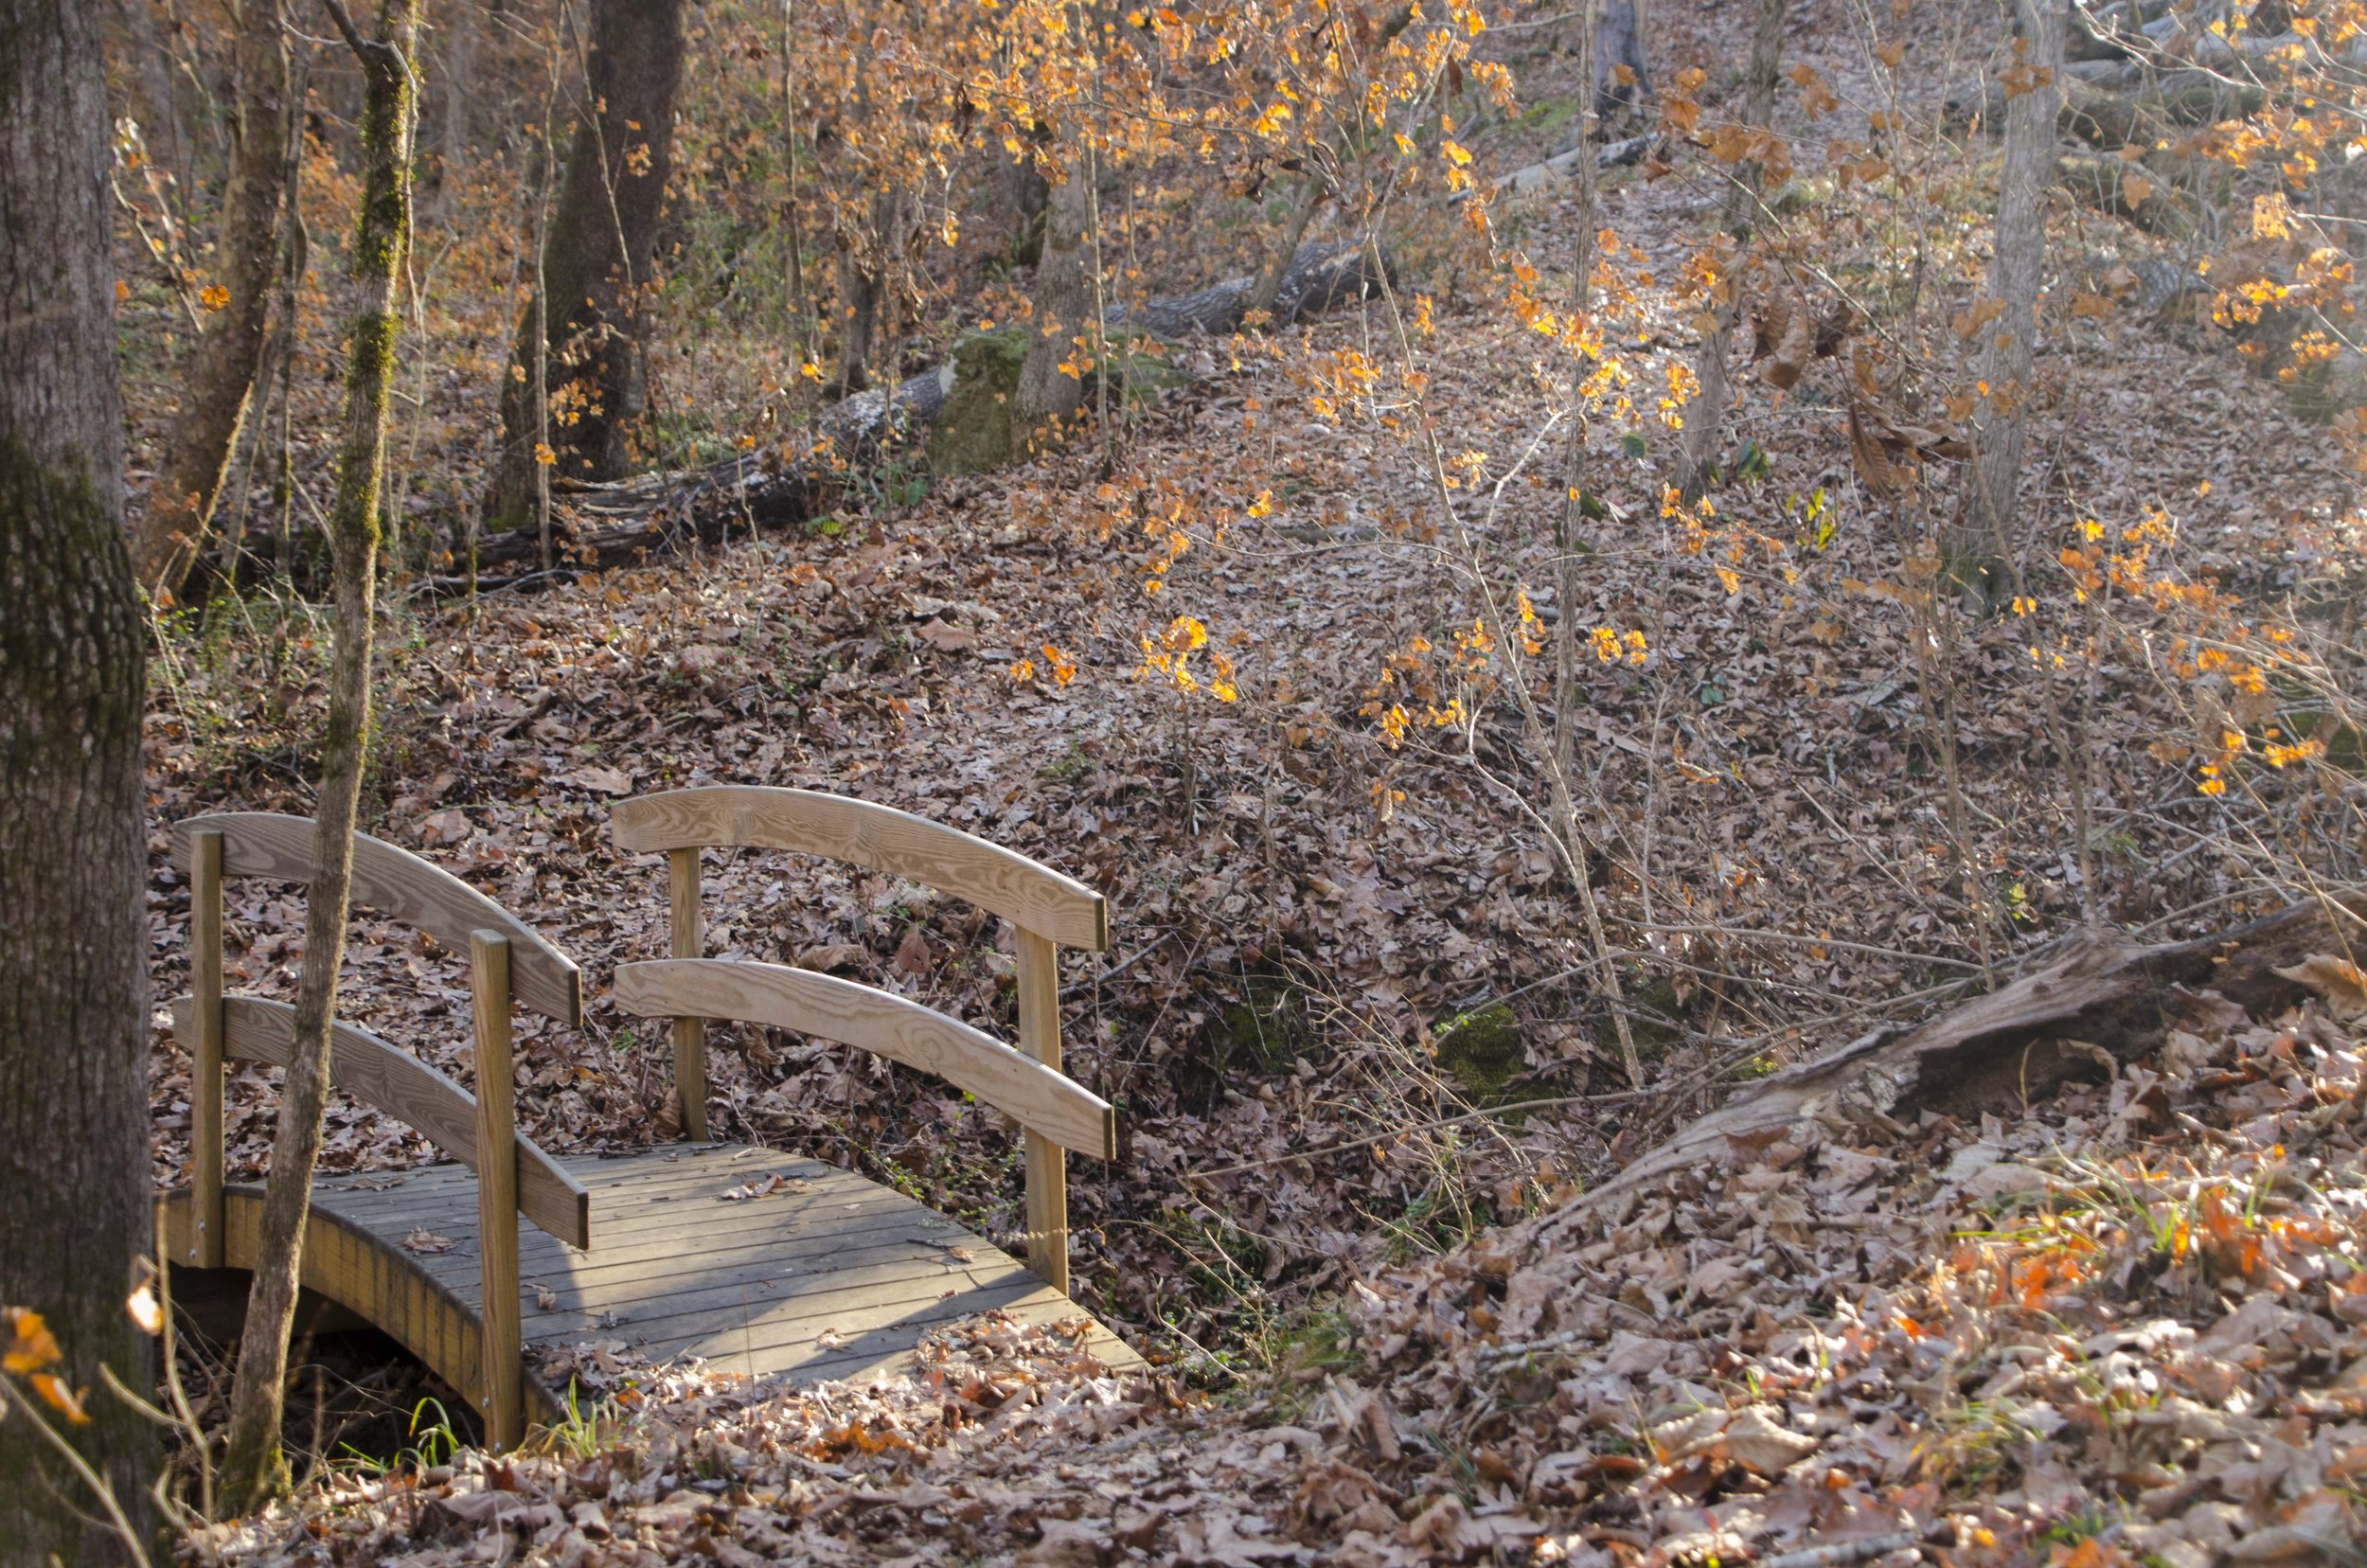 Wooden bridges cross small feeder creeks at several spots along the trail.(SCDNR photo by D. Lucas)